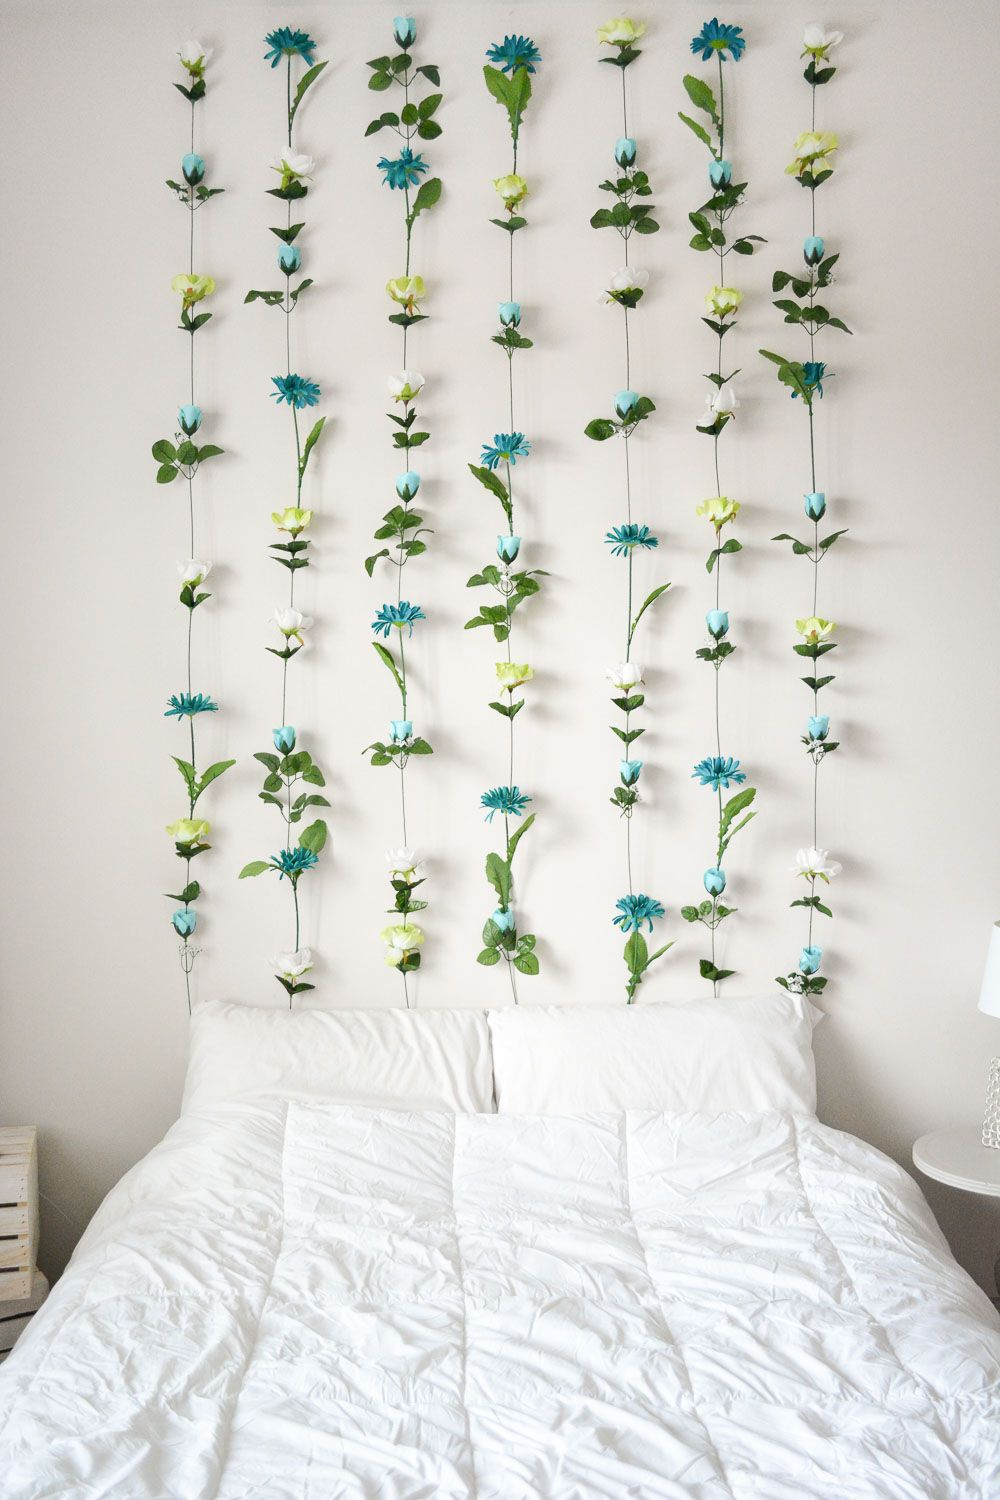 Diy Flower Wall Diy Projects For Bedroom Bedroom Decor